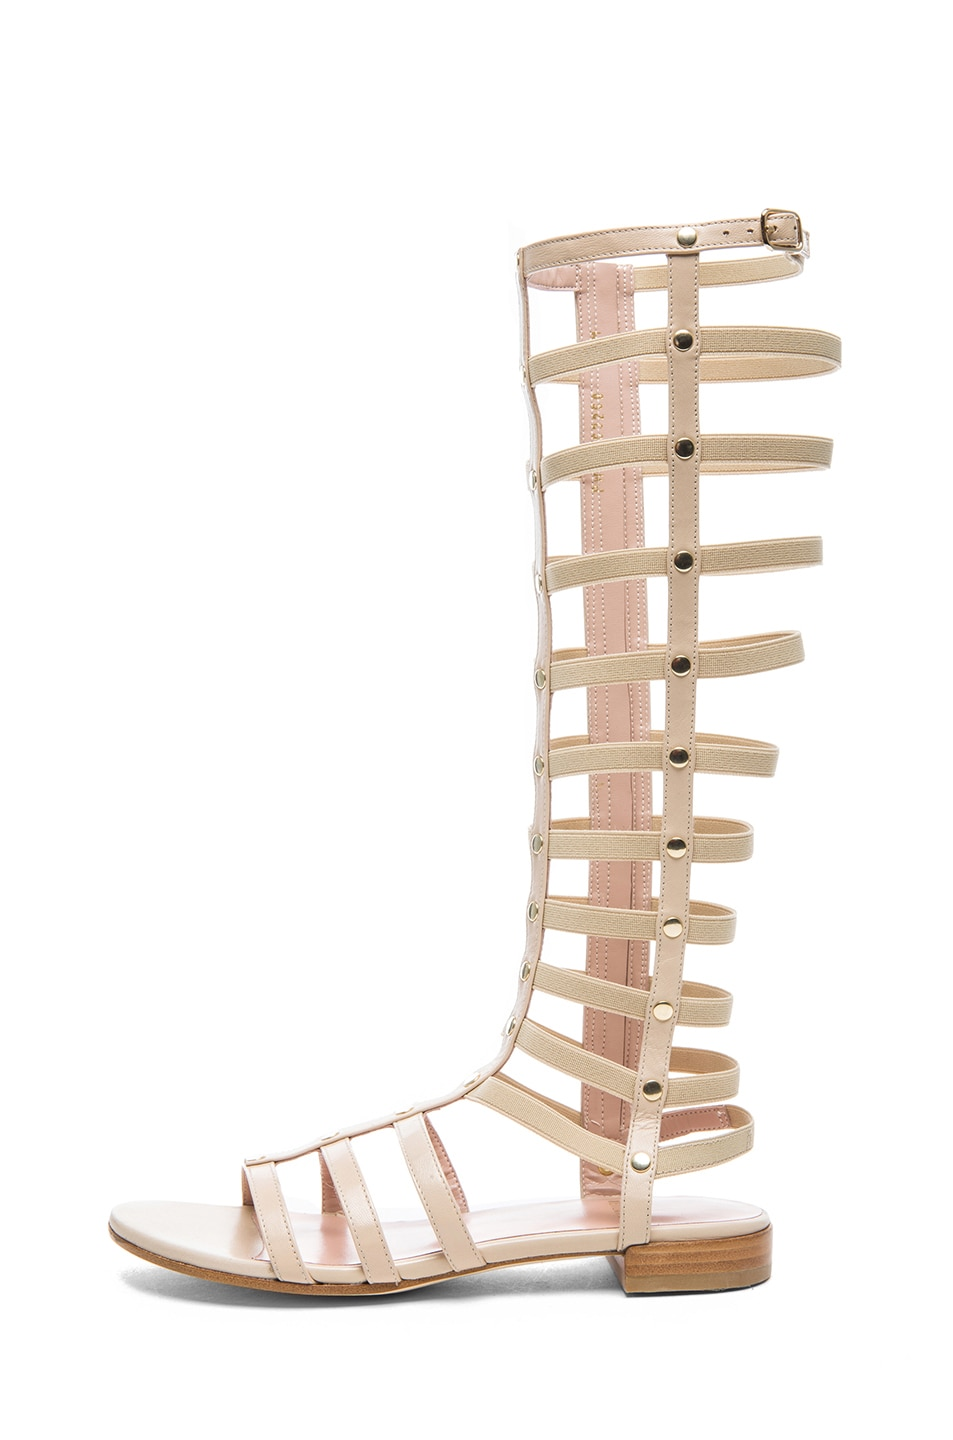 Image 1 of Stuart Weitzman Nappa Leather Gladiator Sandals in Pan